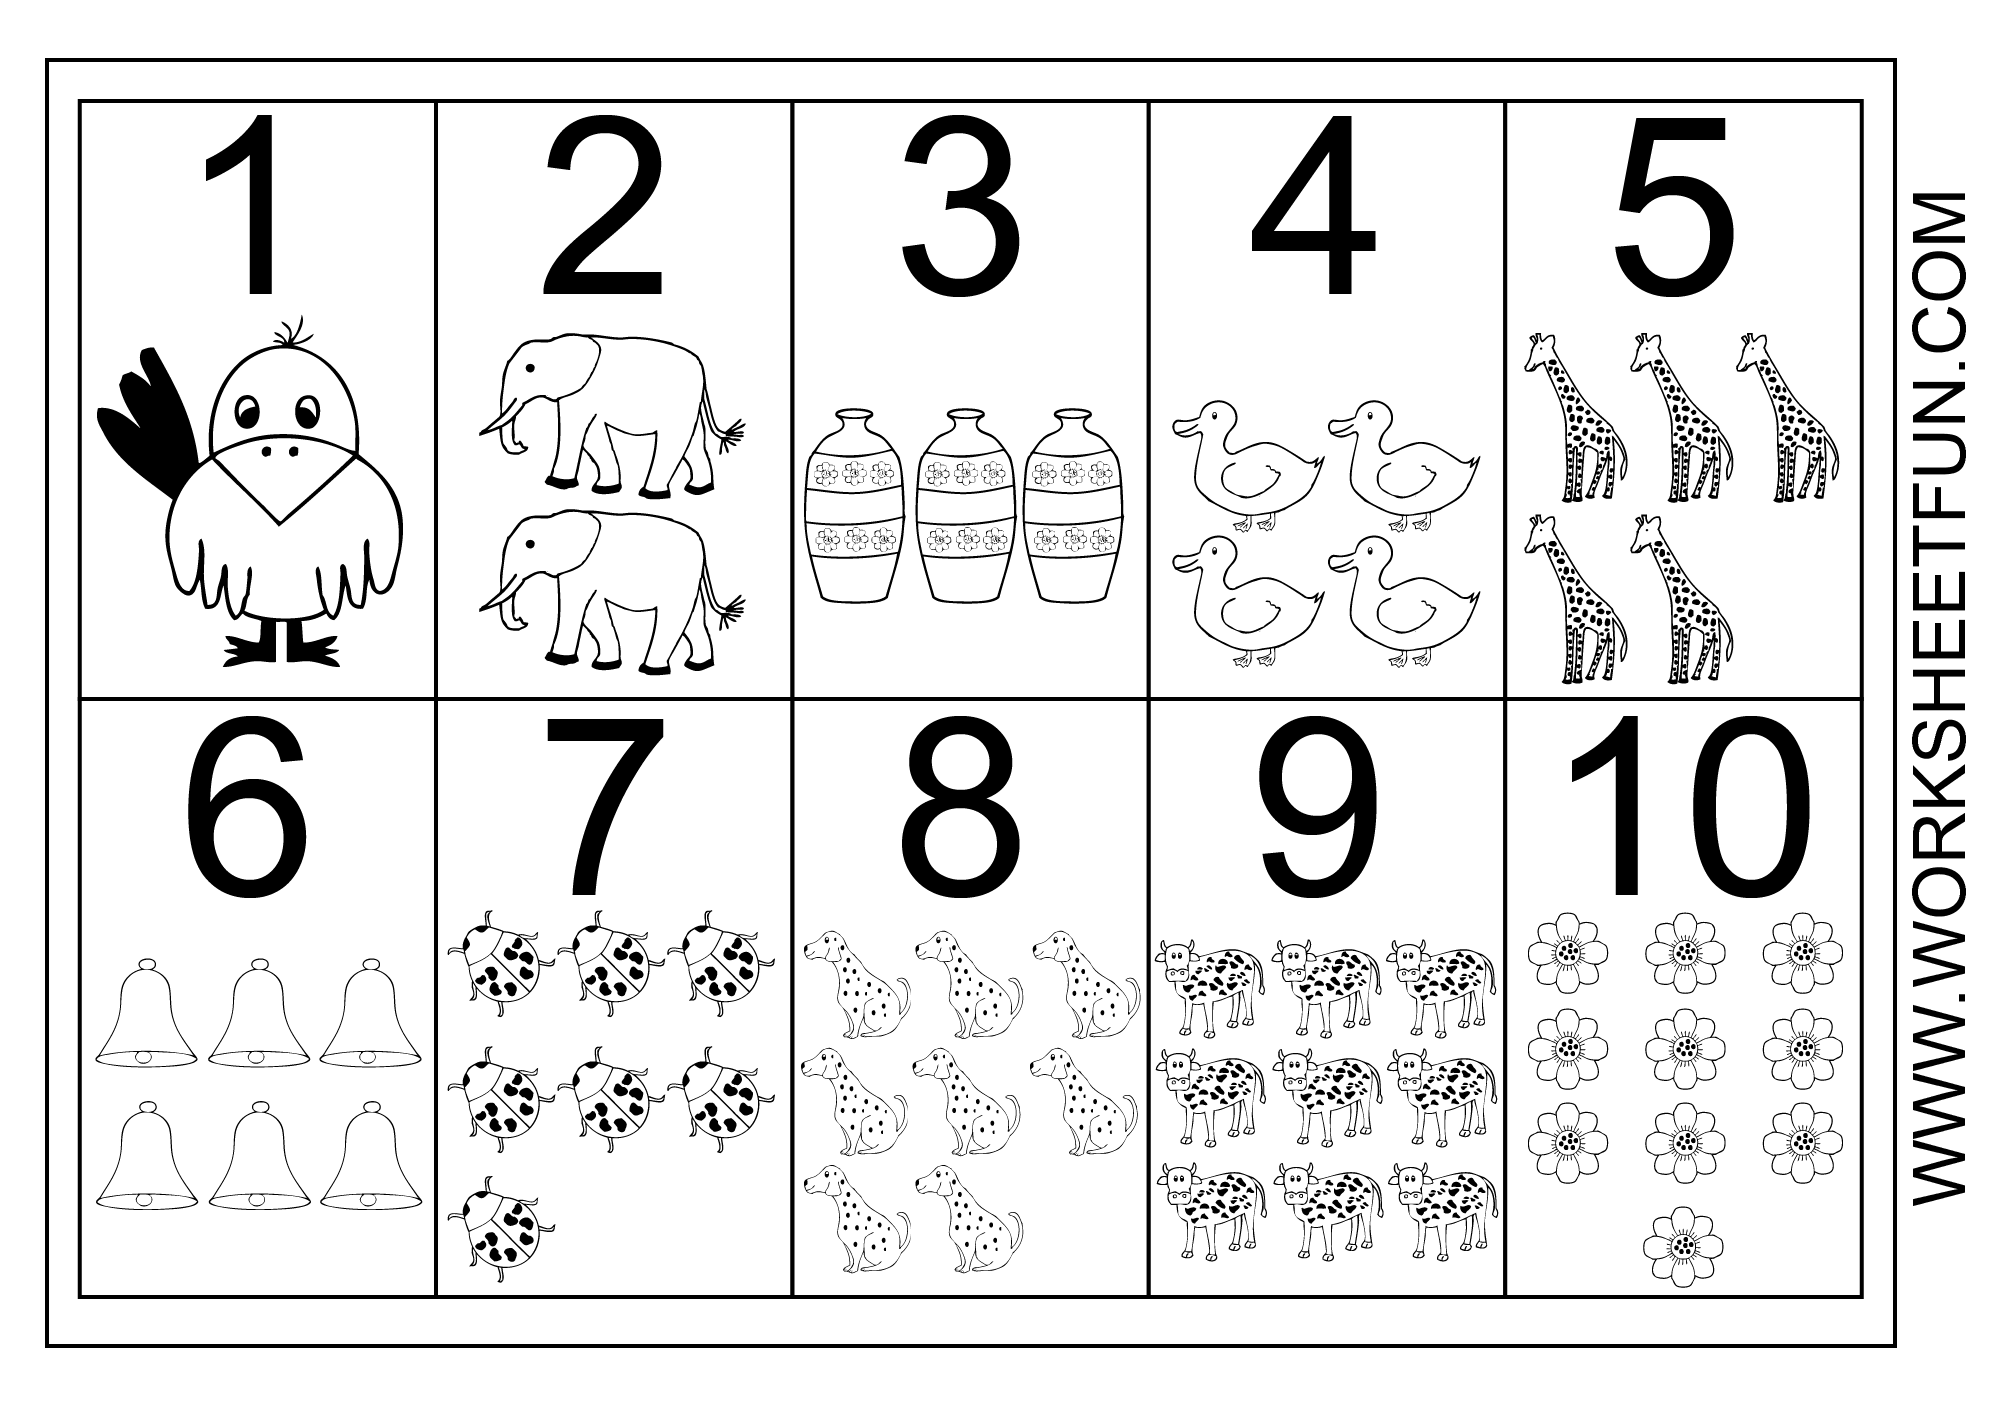 Picture Number Chart 1 10 Free Printable Worksheets Worksheetfun